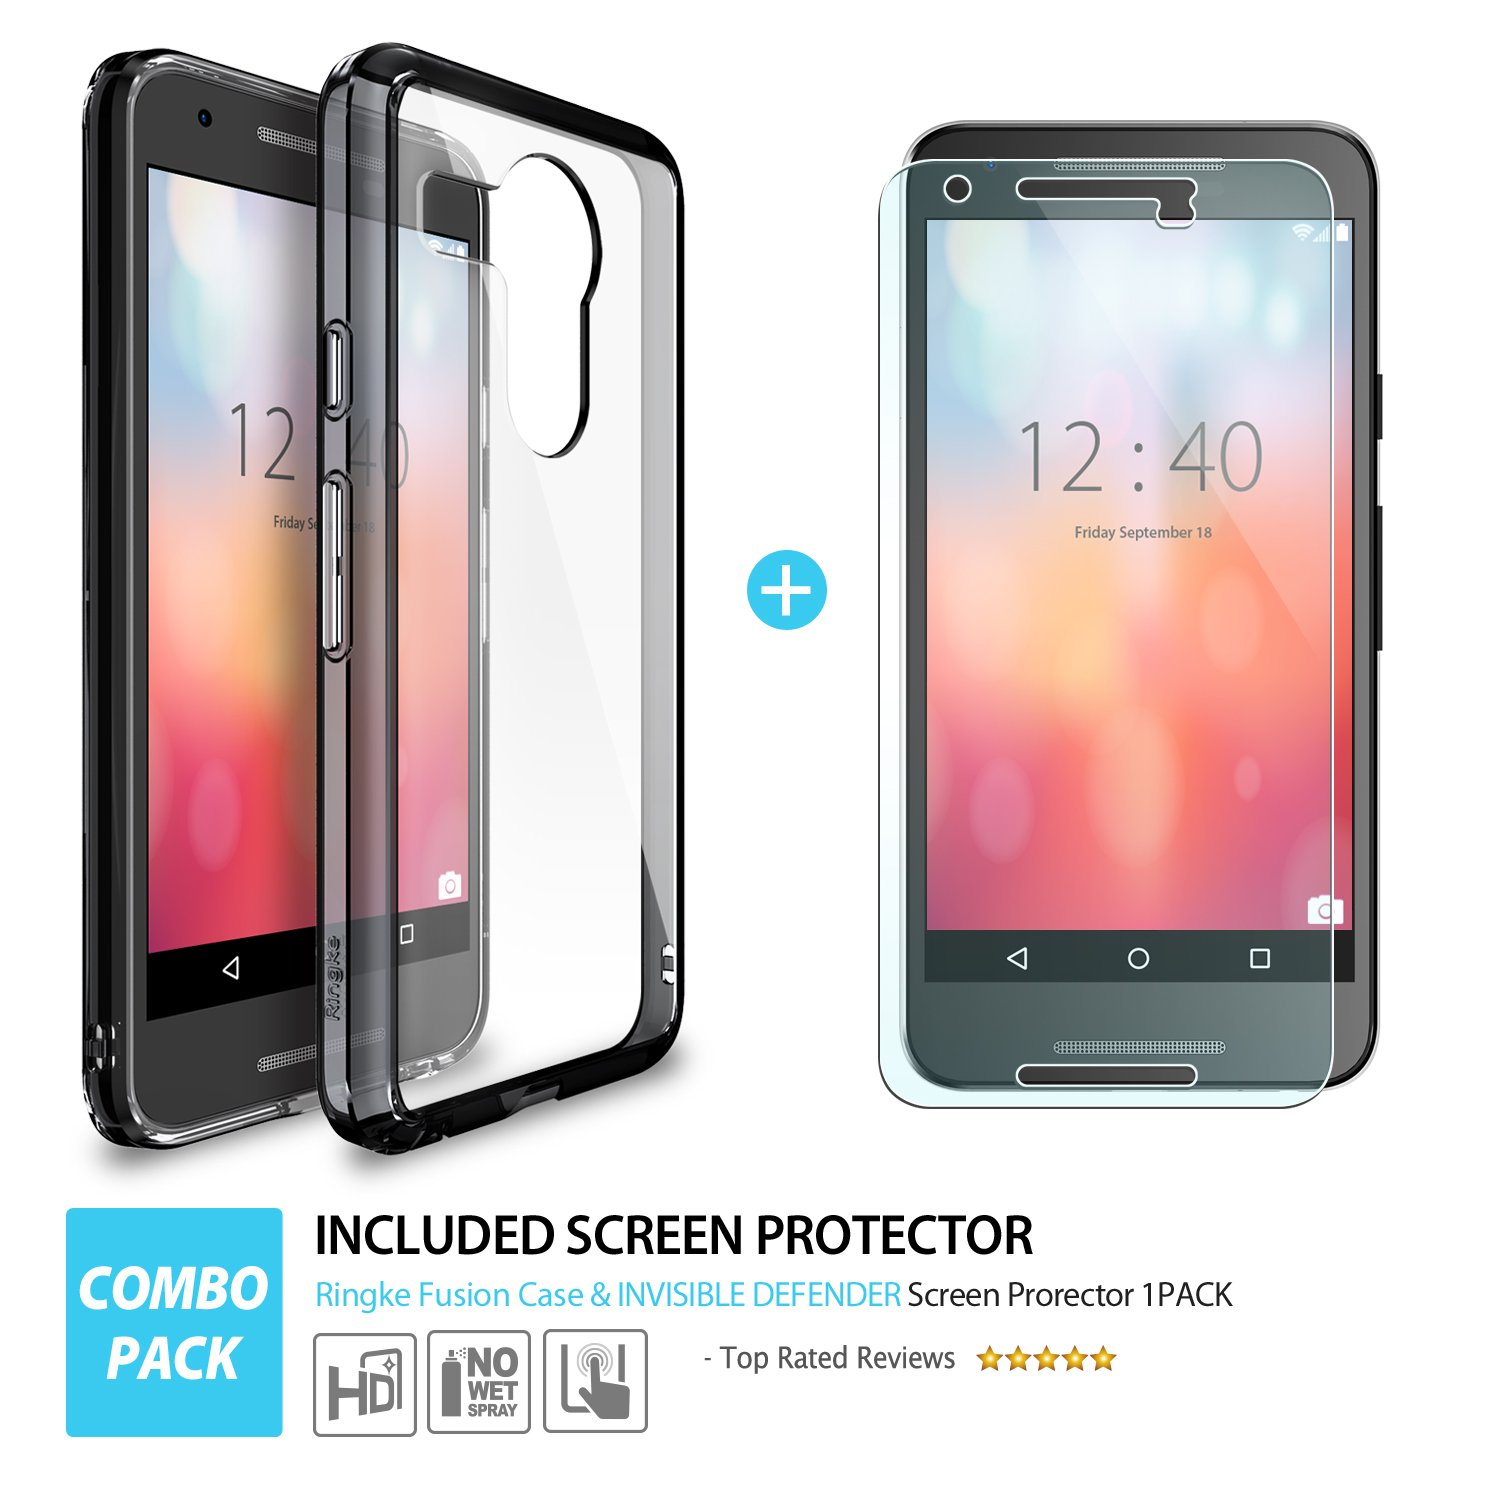 rearth invisible defender nexus 5x screen protector 4 pack morethe